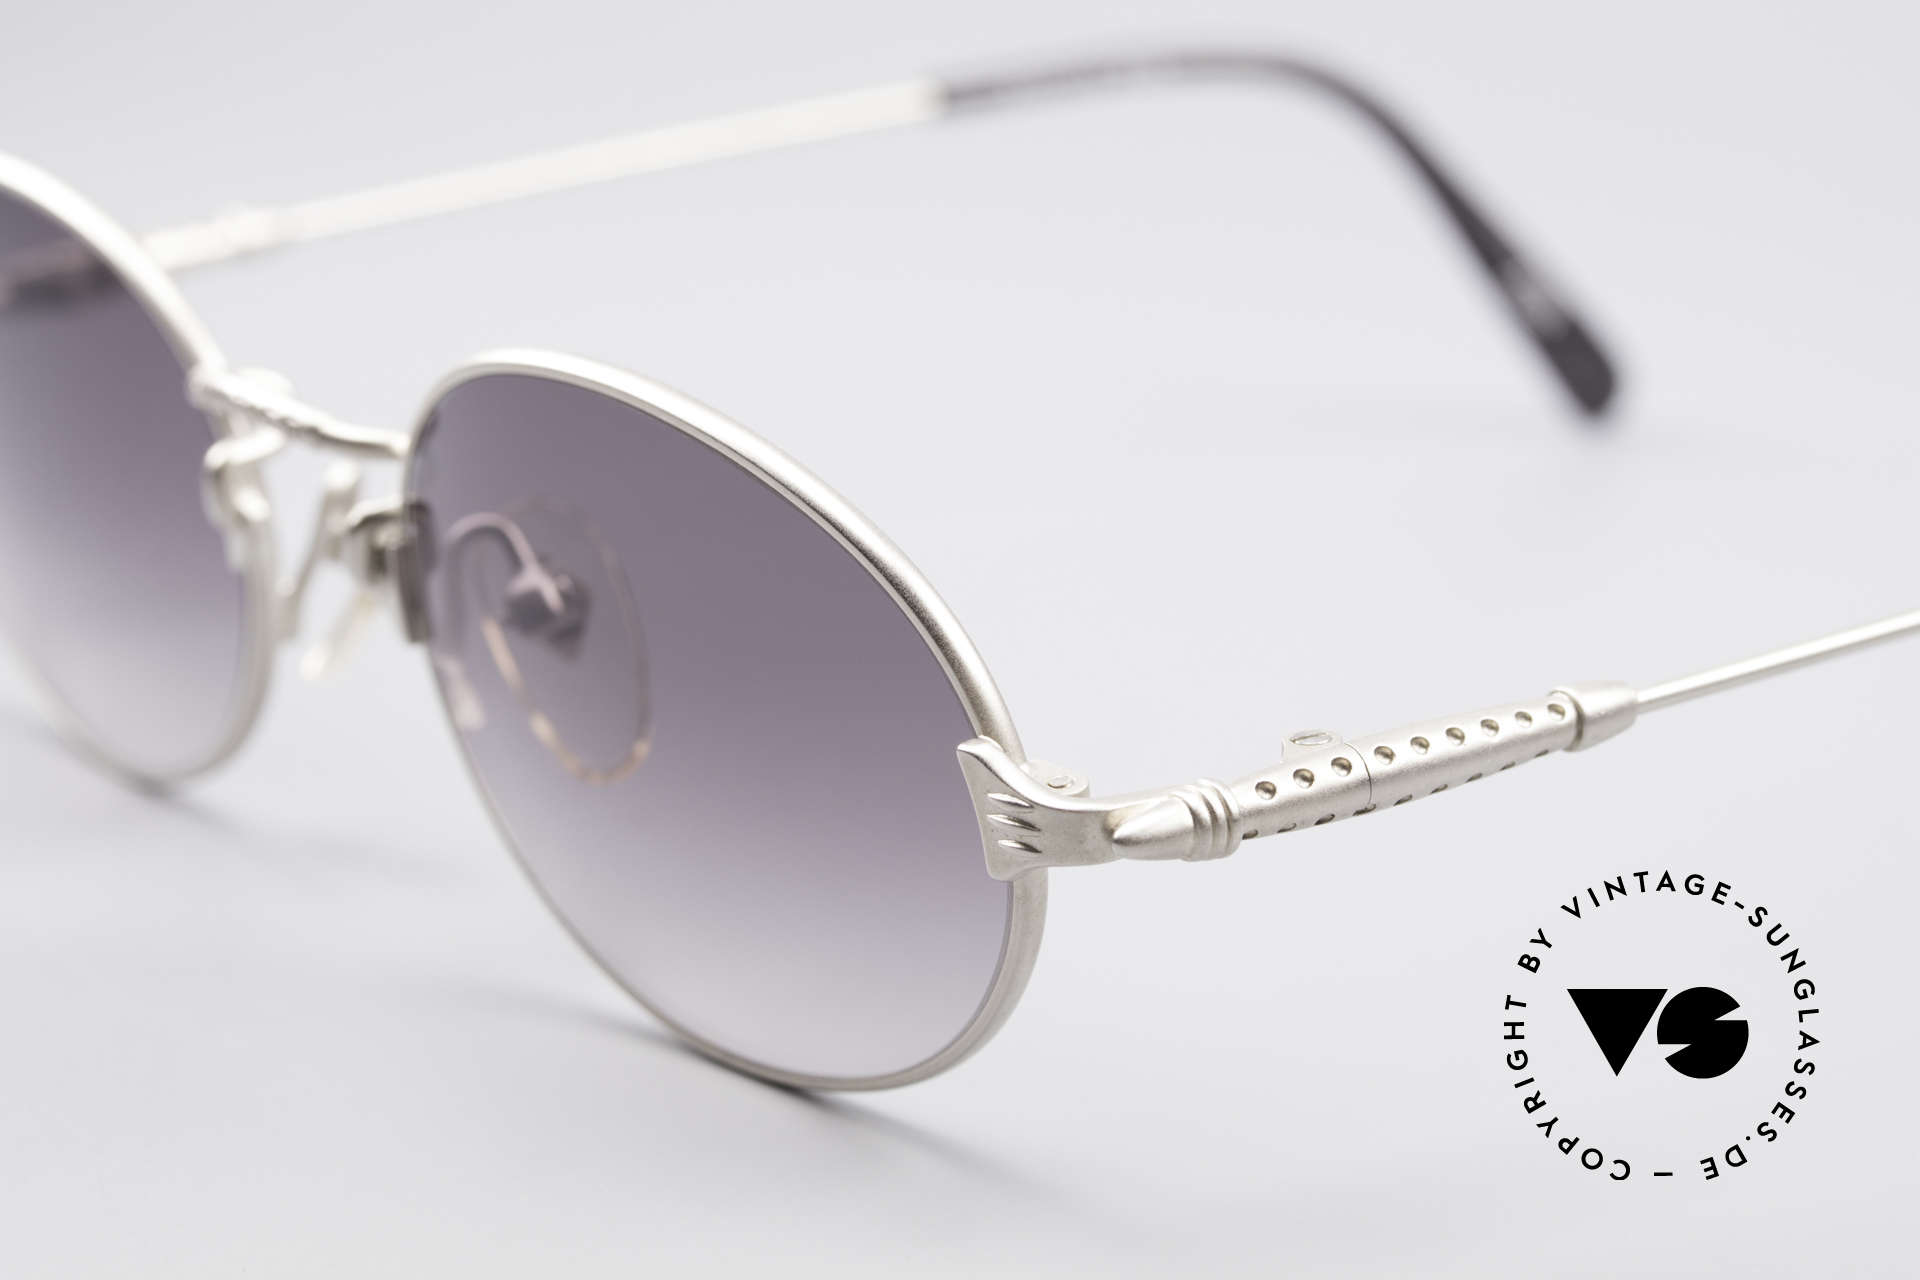 Jean Paul Gaultier 55-6108 Oval Vintage Sunglasses, high-end frame with gray-gradient sun lenses; 100% UV, Made for Men and Women